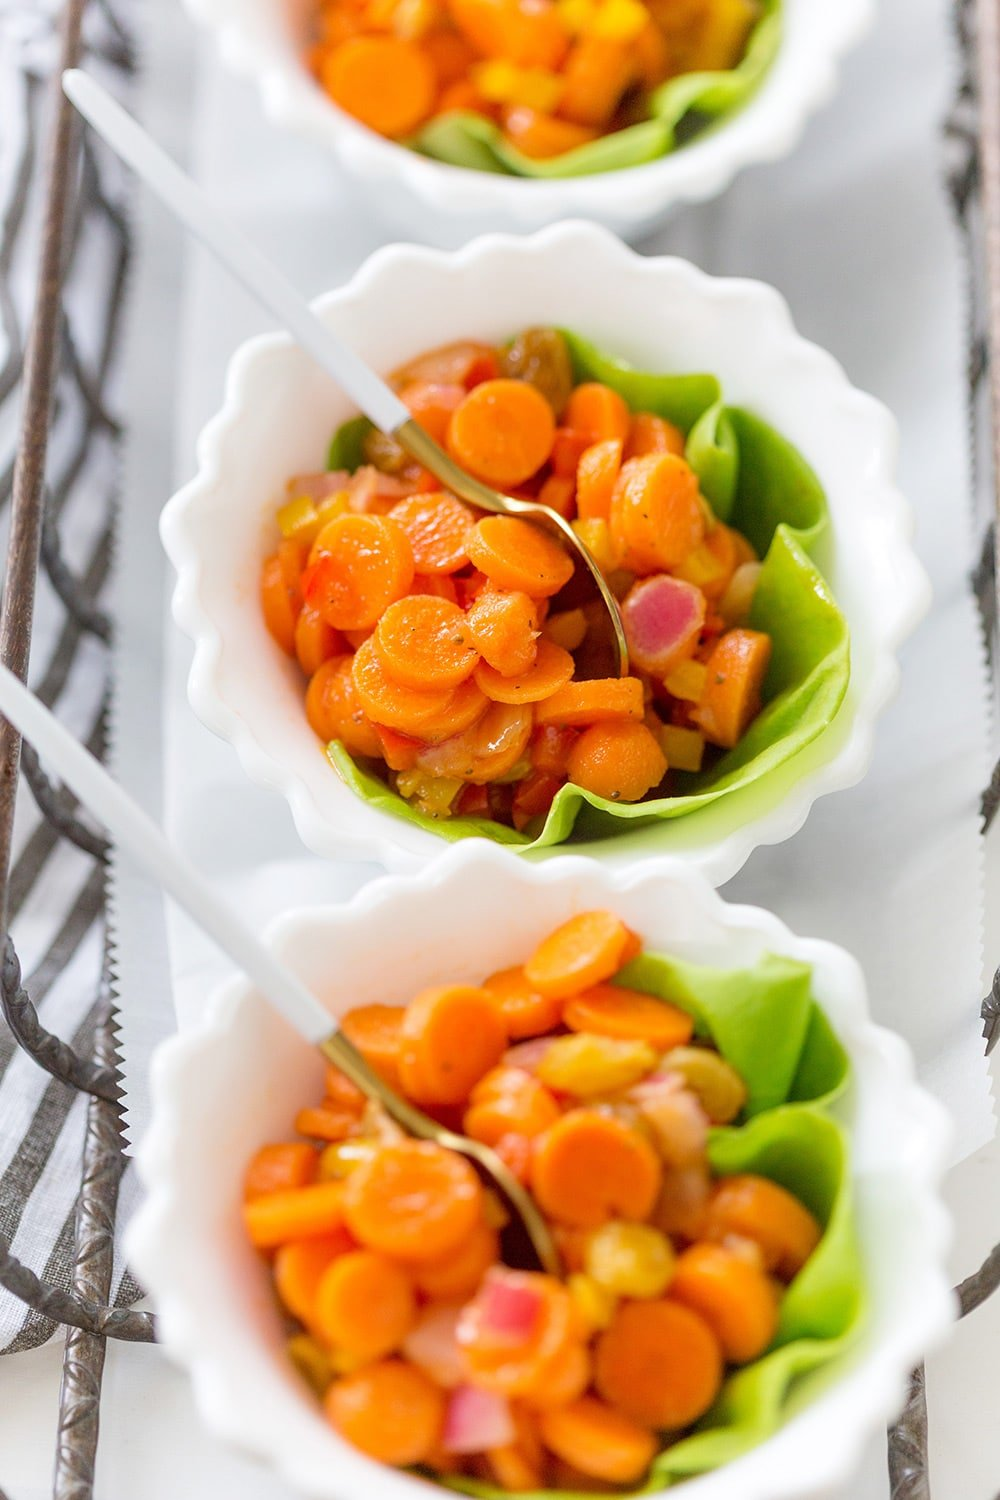 Copper Pennies Carrot Salad Recipe